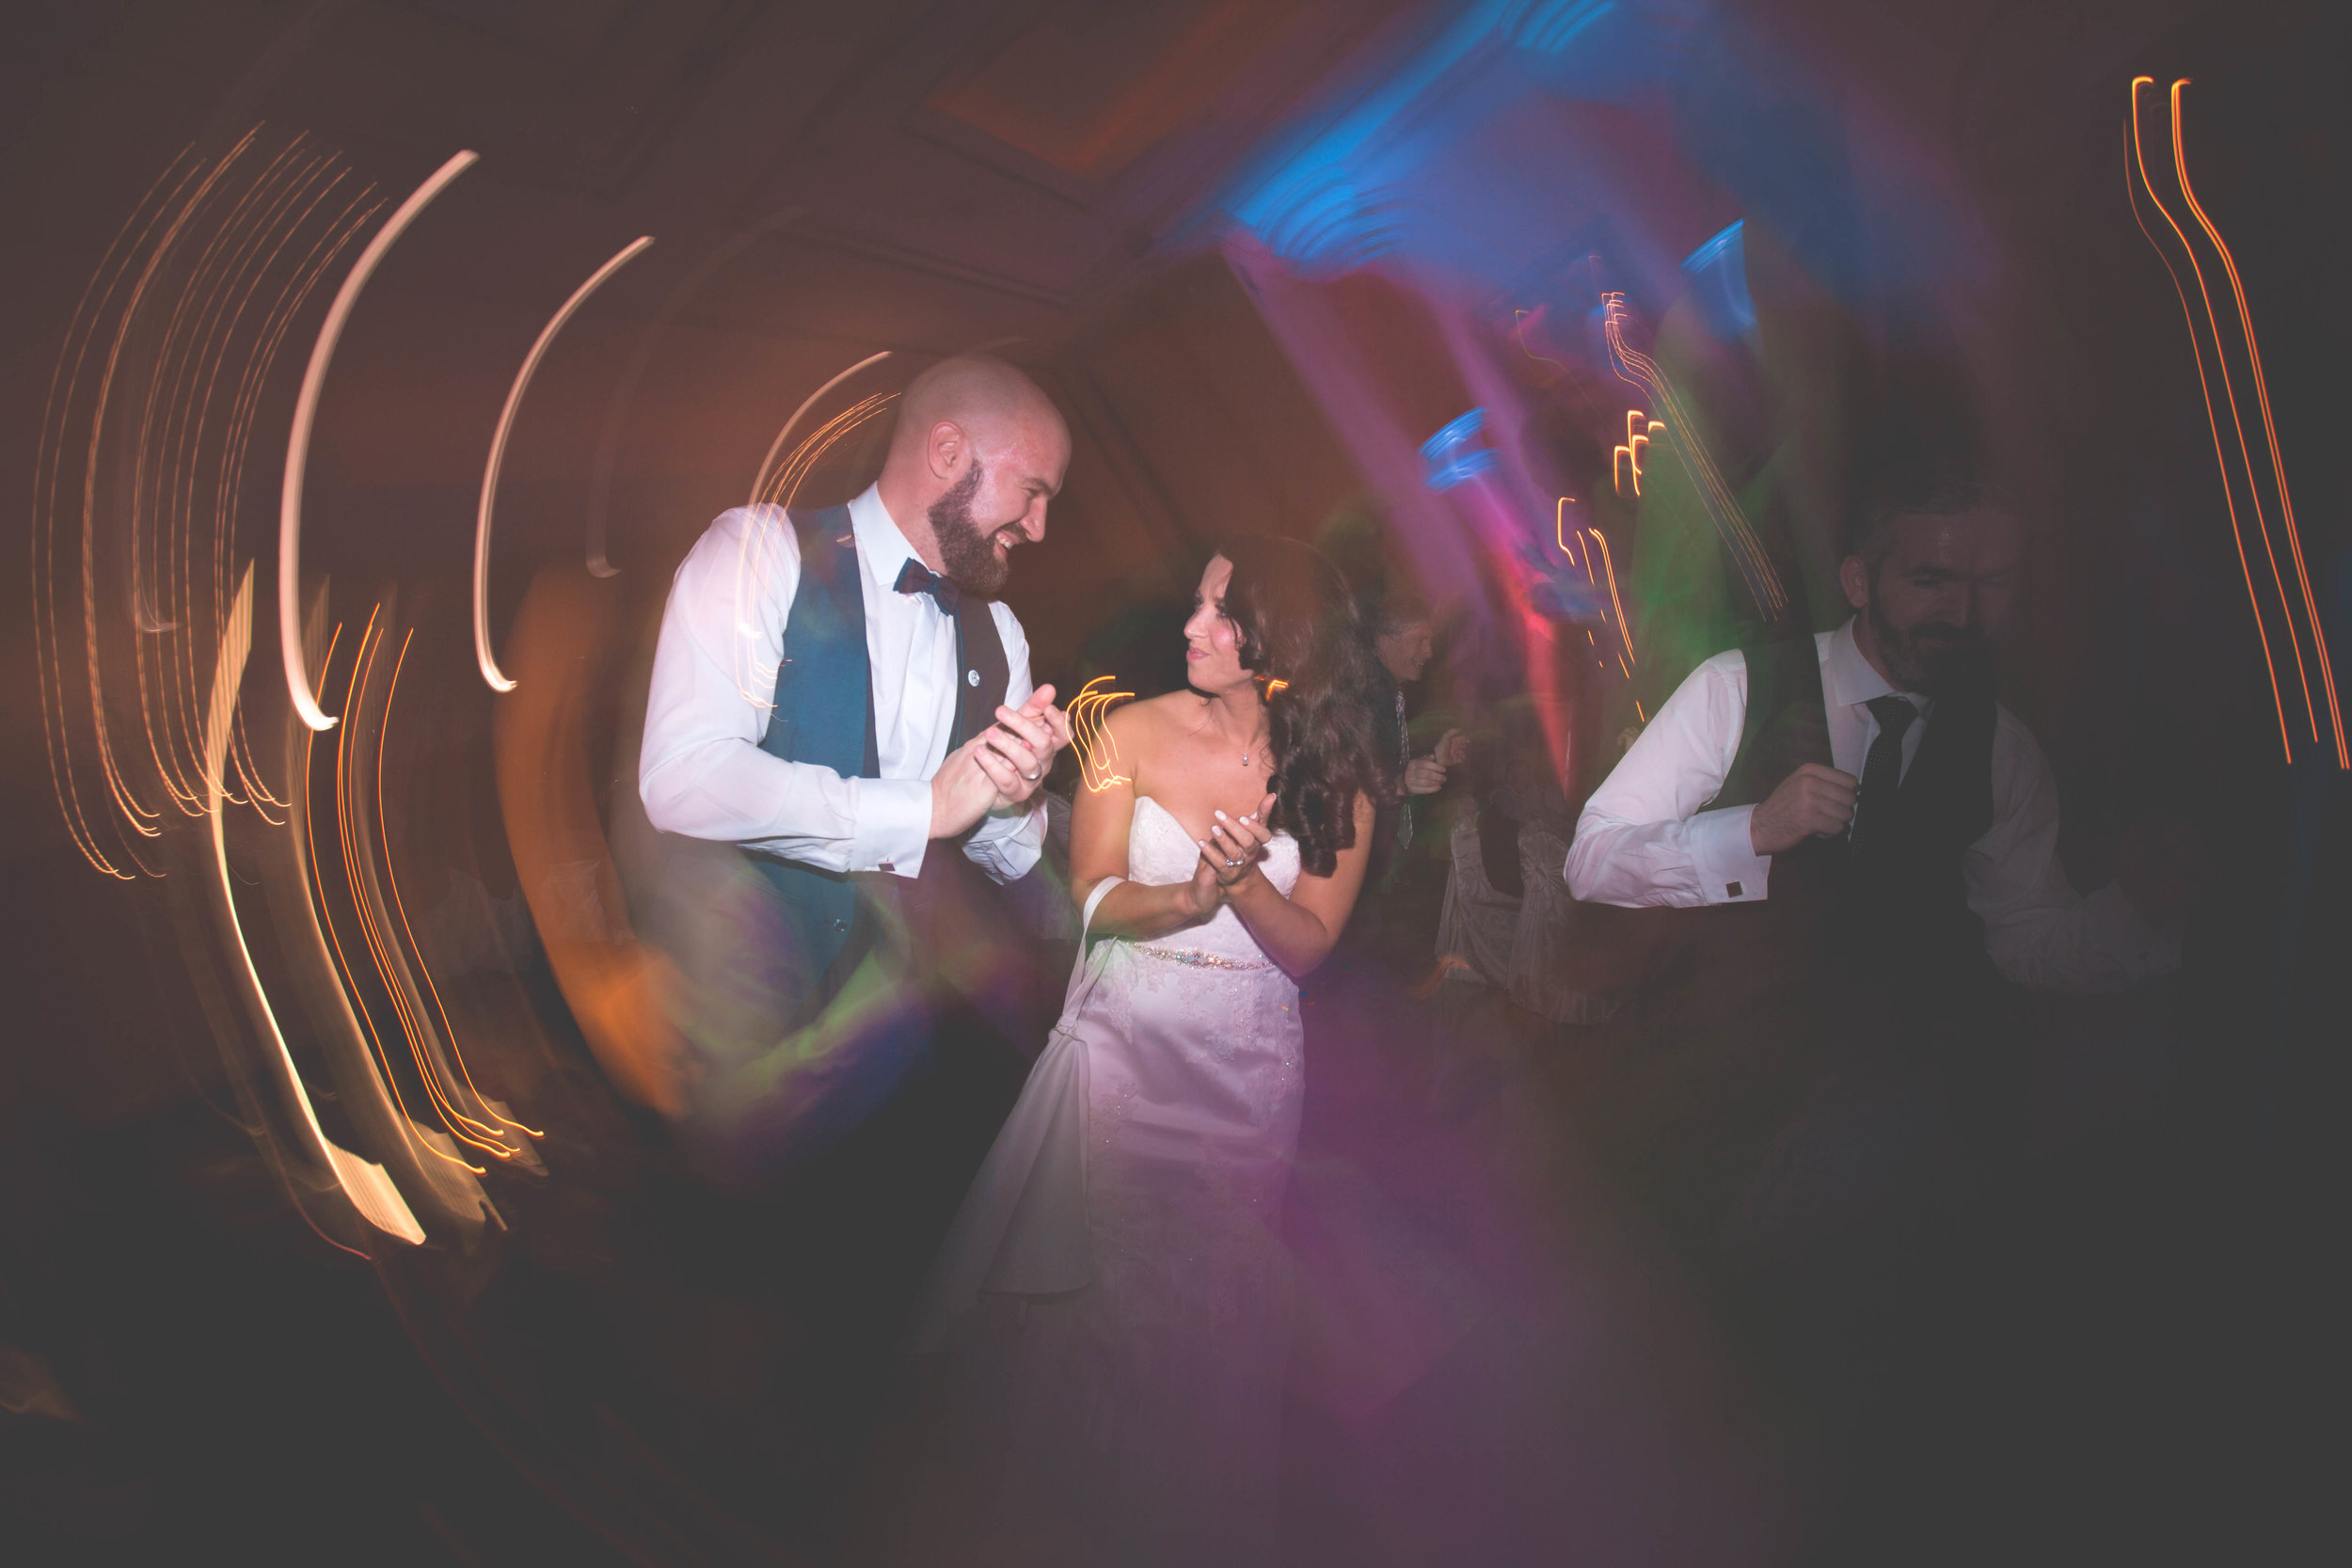 Northern Ireland Wedding Photographer | Brian McEwan Photography | Affordable Wedding Photography Throughout Antrim Down Armagh Tyrone Londonderry Derry Down Fermanagh -56.jpg